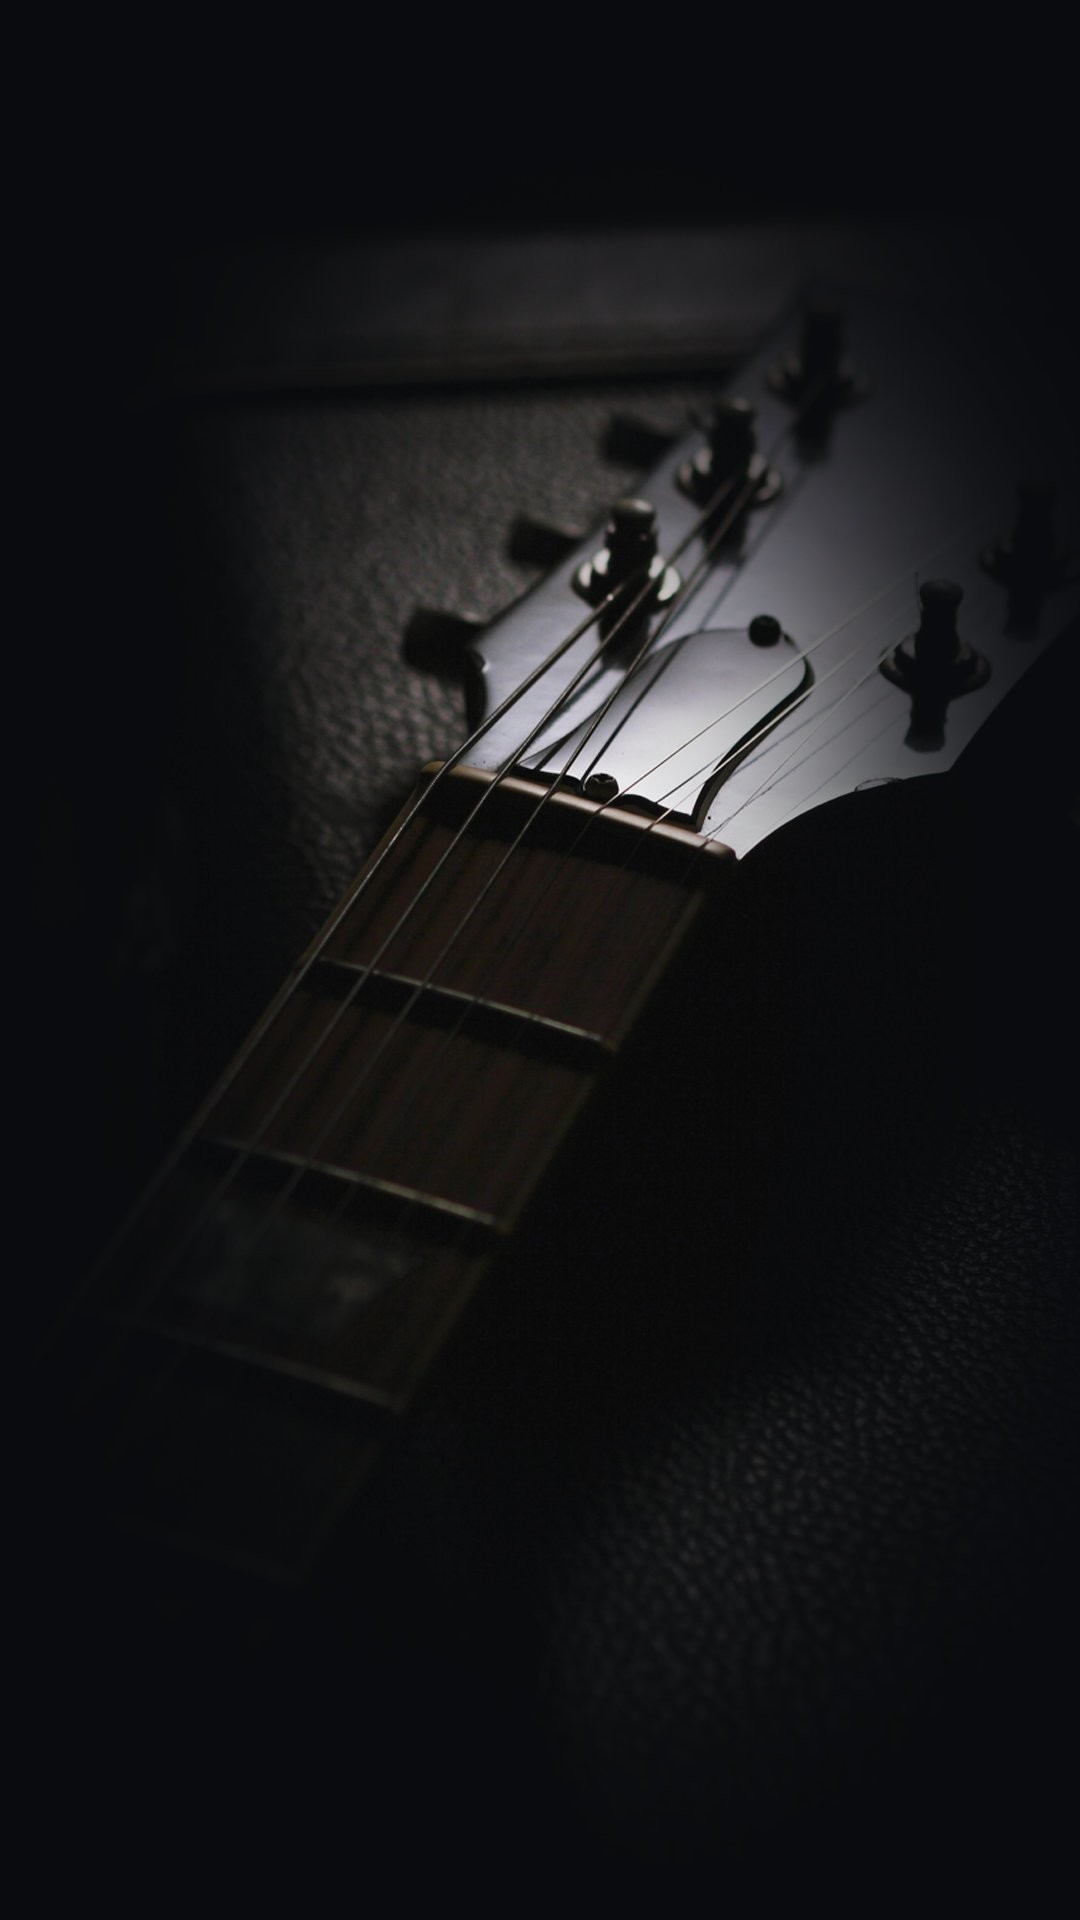 Guitar Iphone Wallpaper Posted By Ryan Peltier